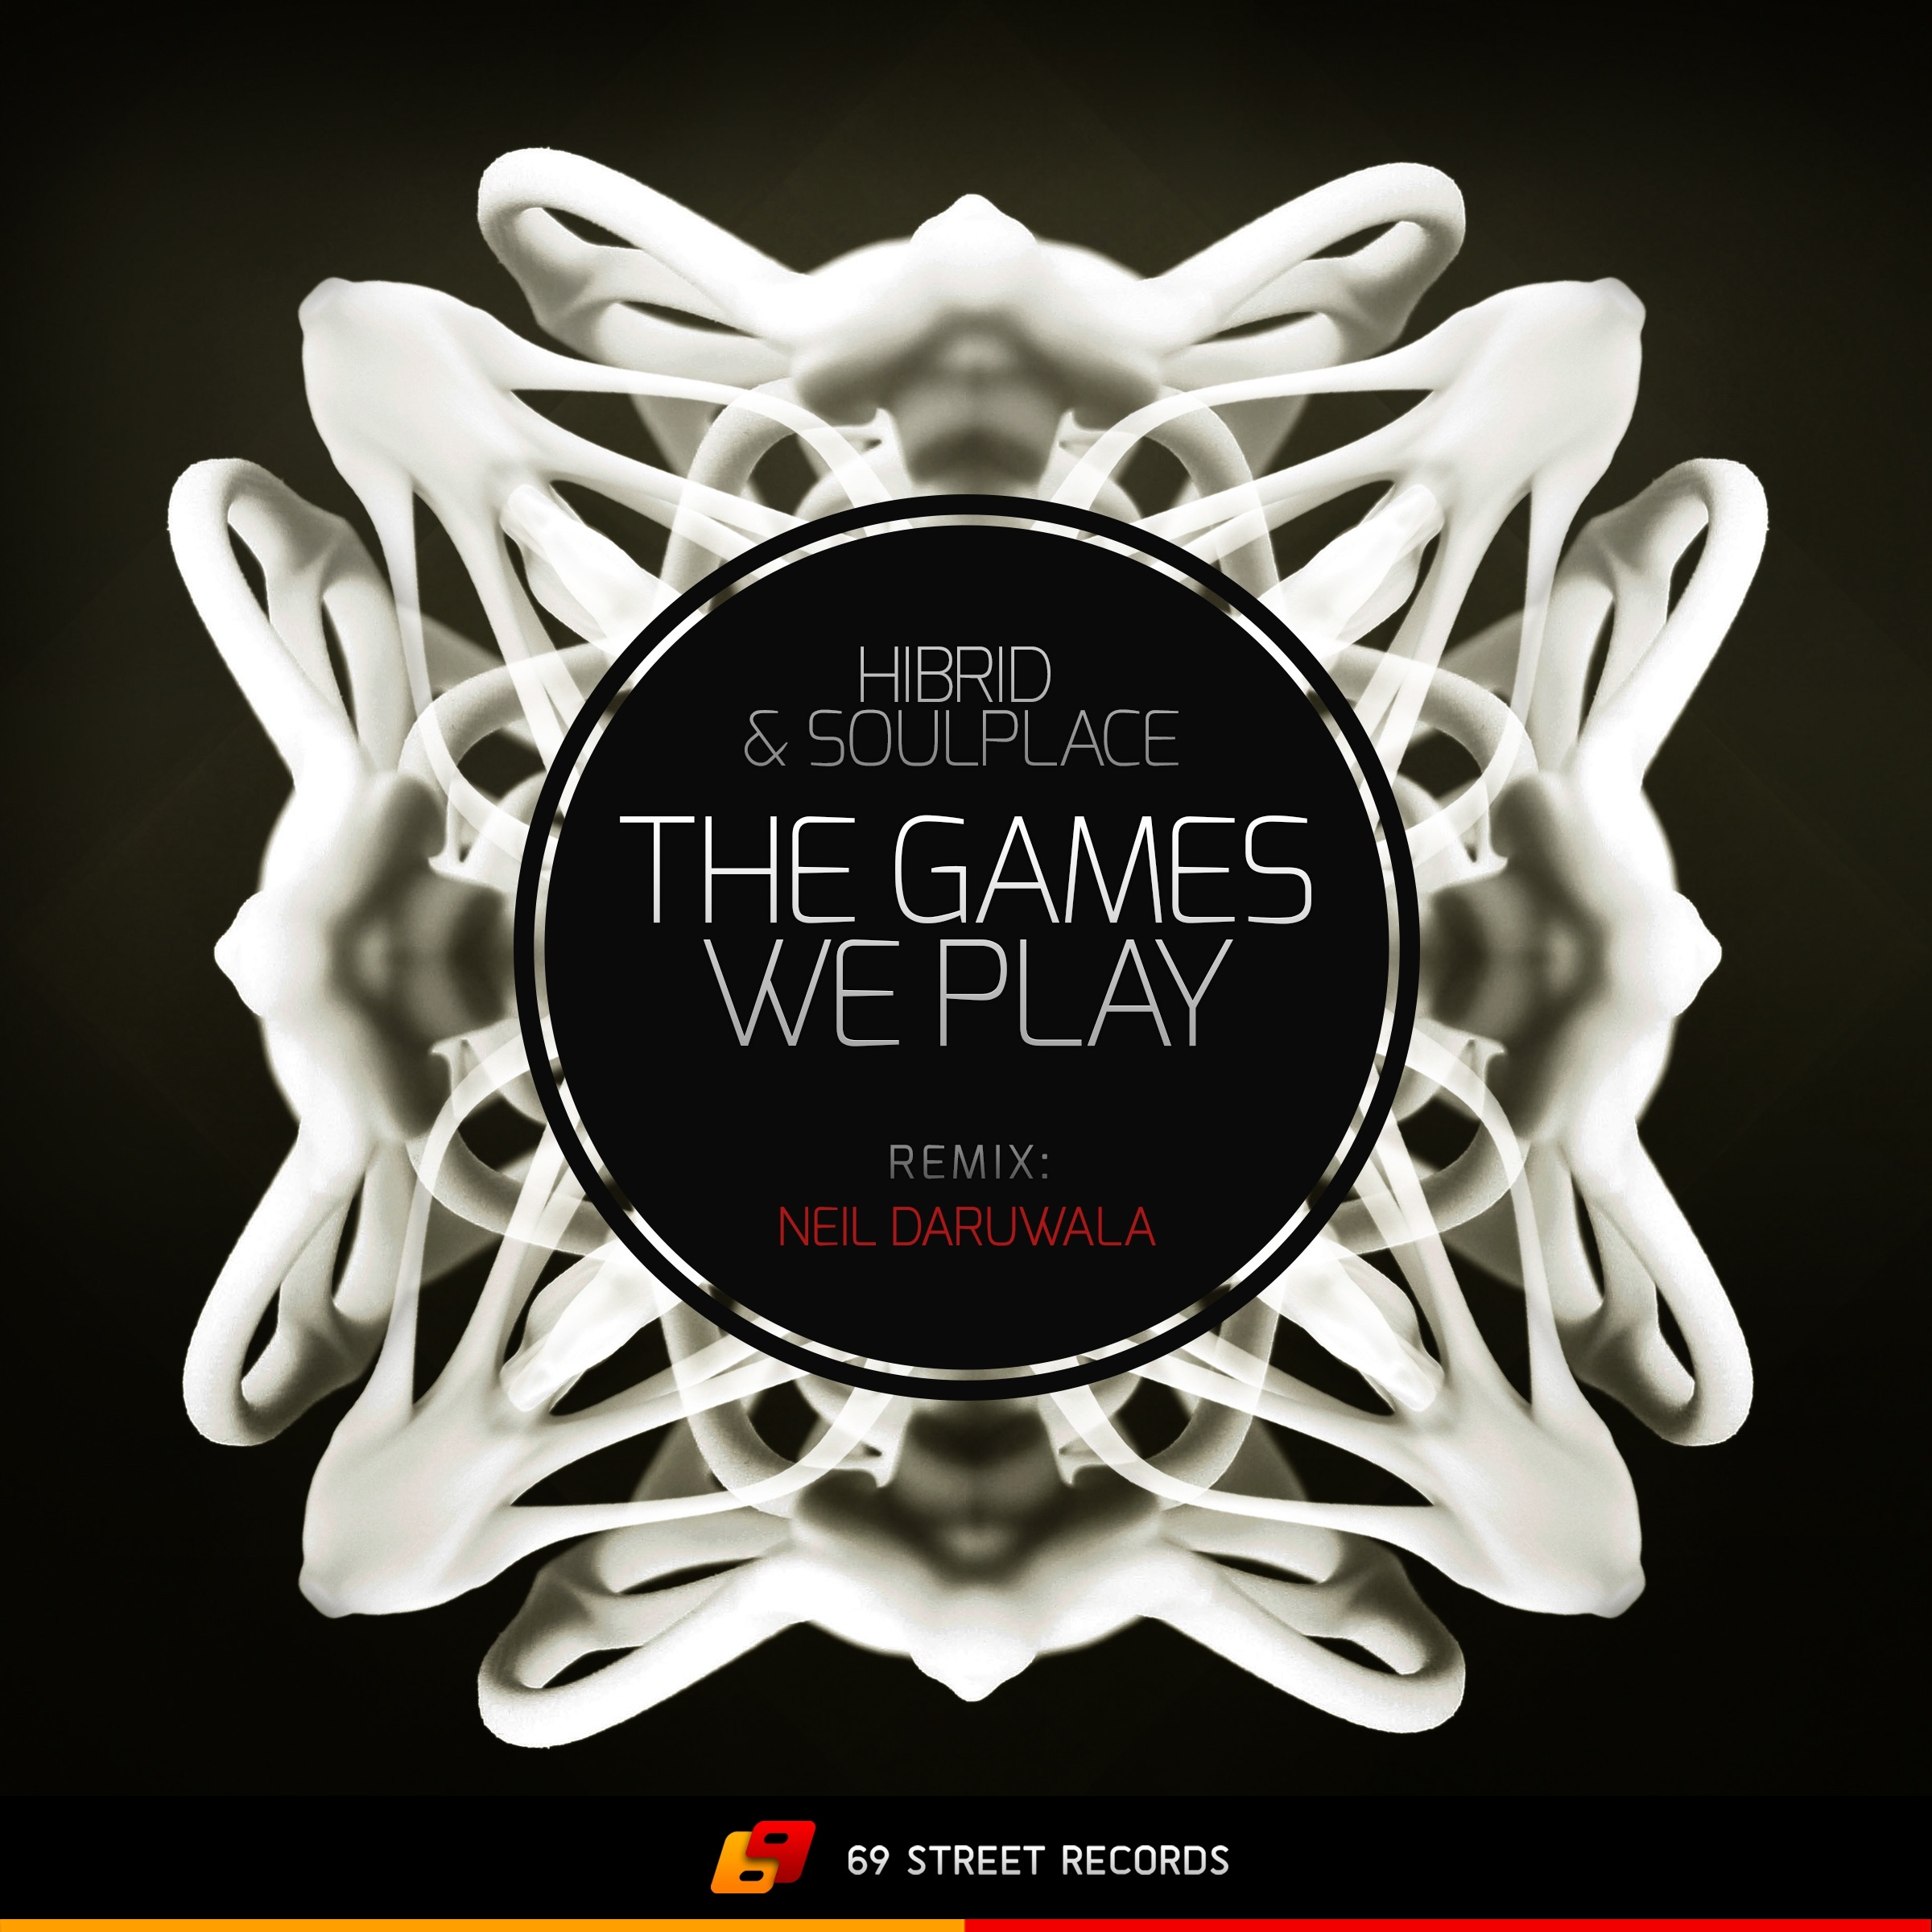 The Games We Play (Neil Daruwala Remix)